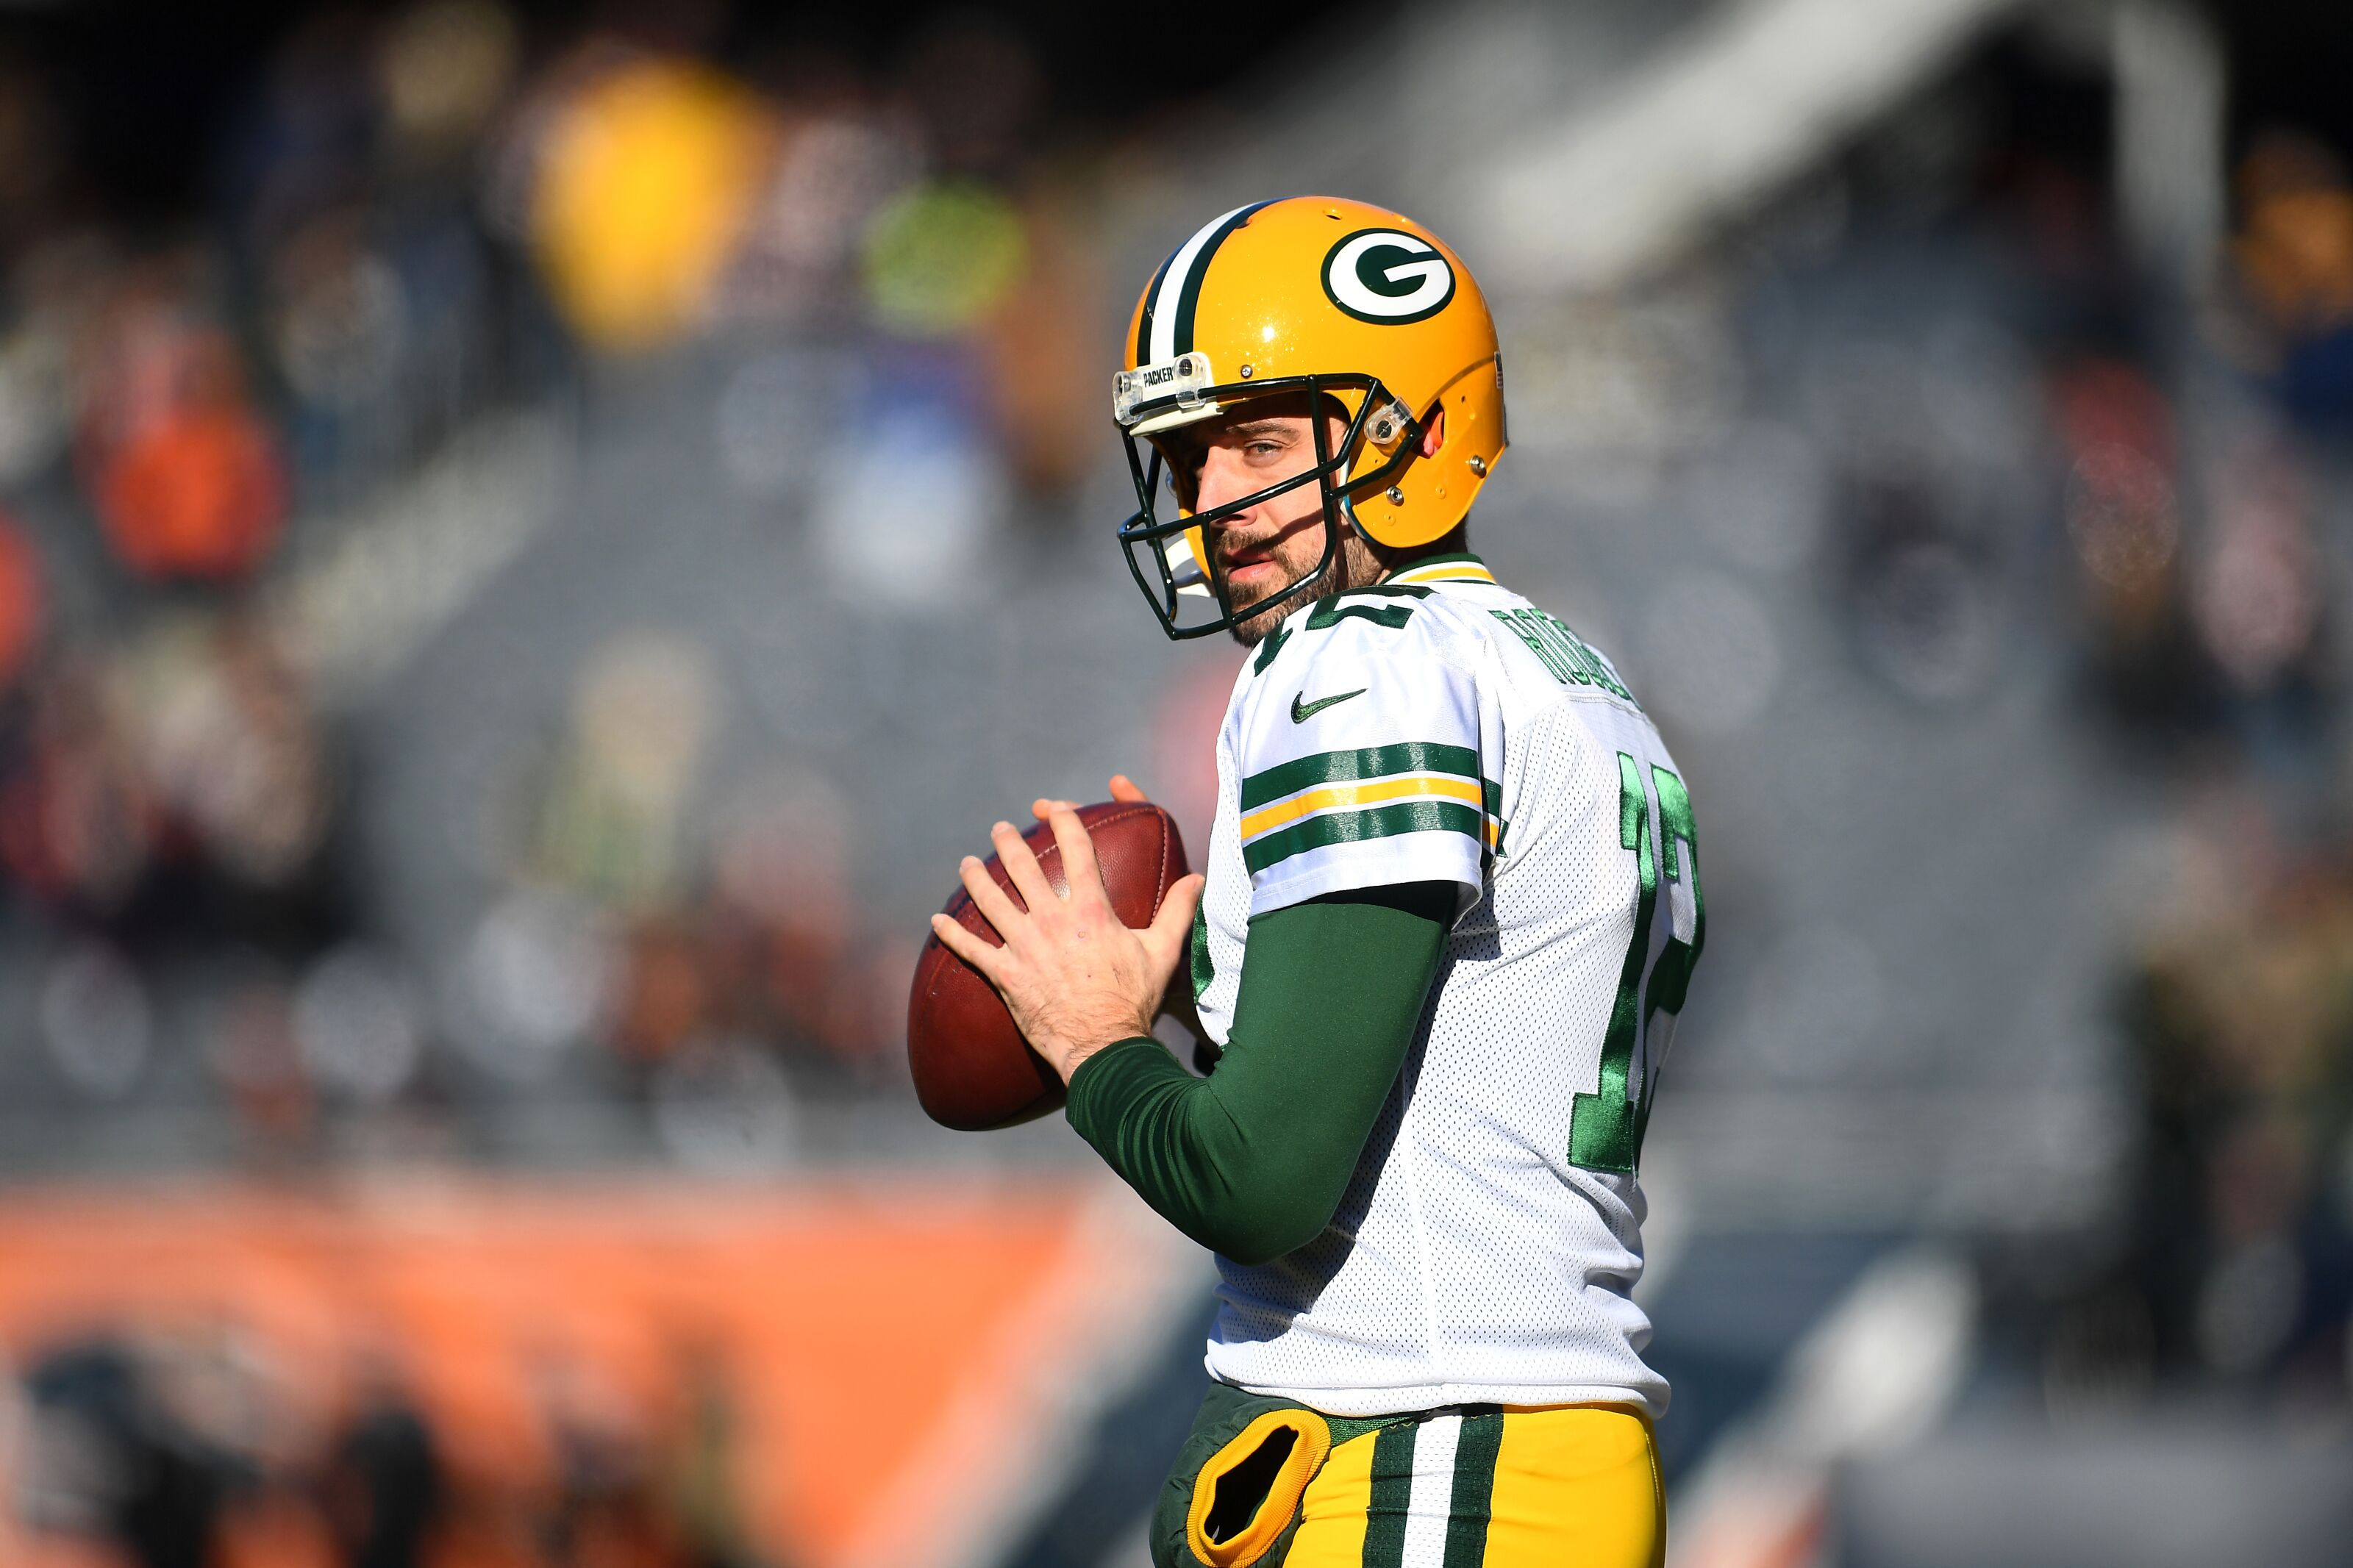 Packers: Four out of five on the road presents toughest challenge